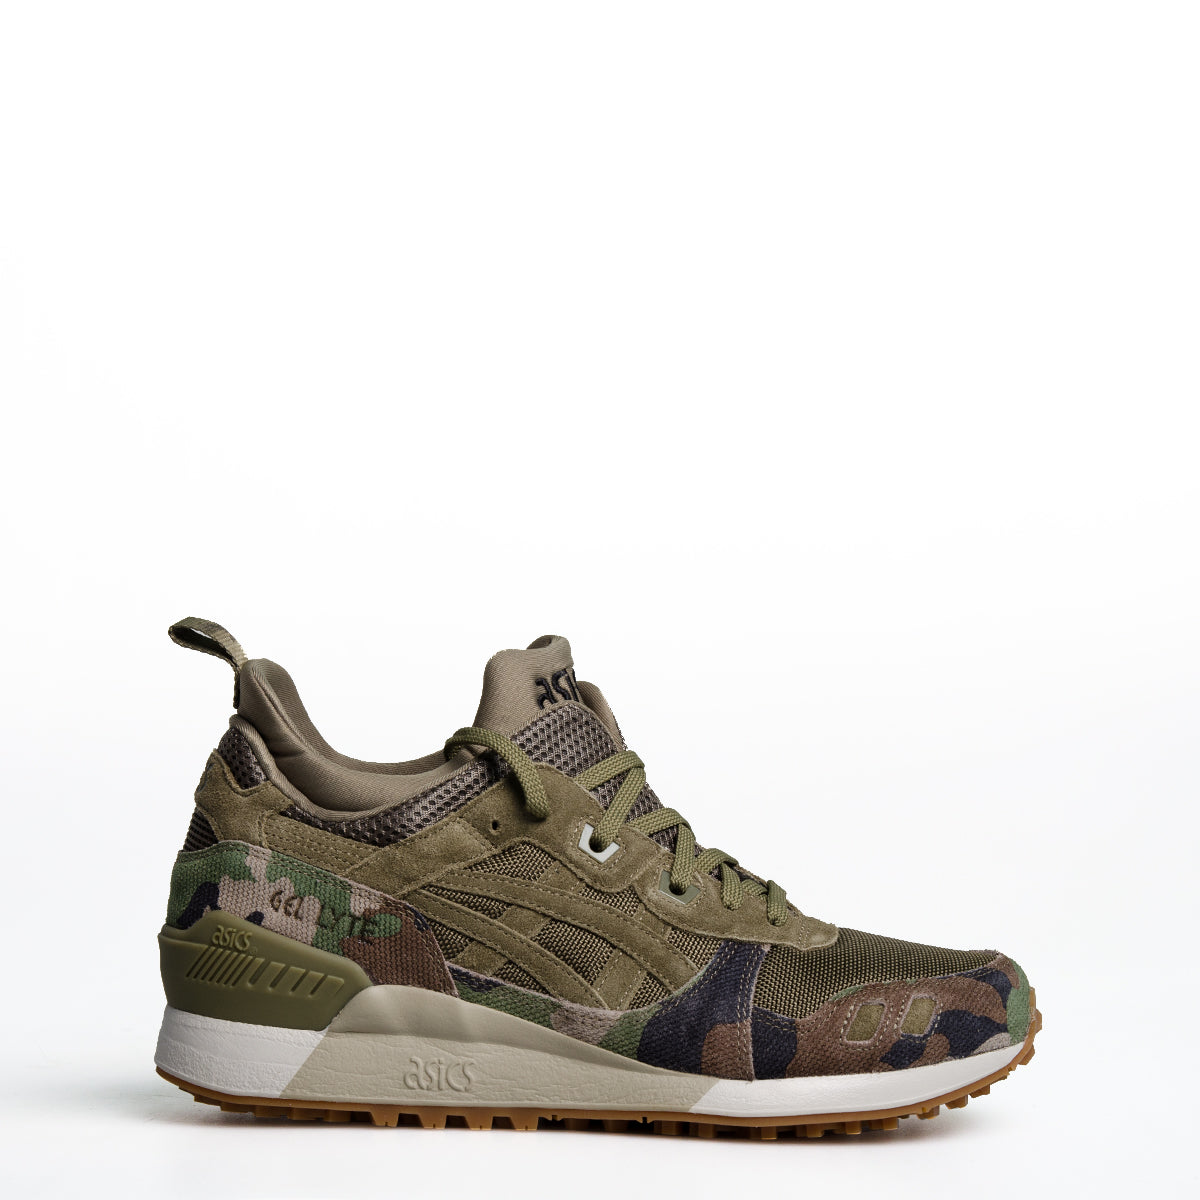 1f259182a6c0d ASICS GEL-Lyte MT Shoes Aloe | Chicago City Sports